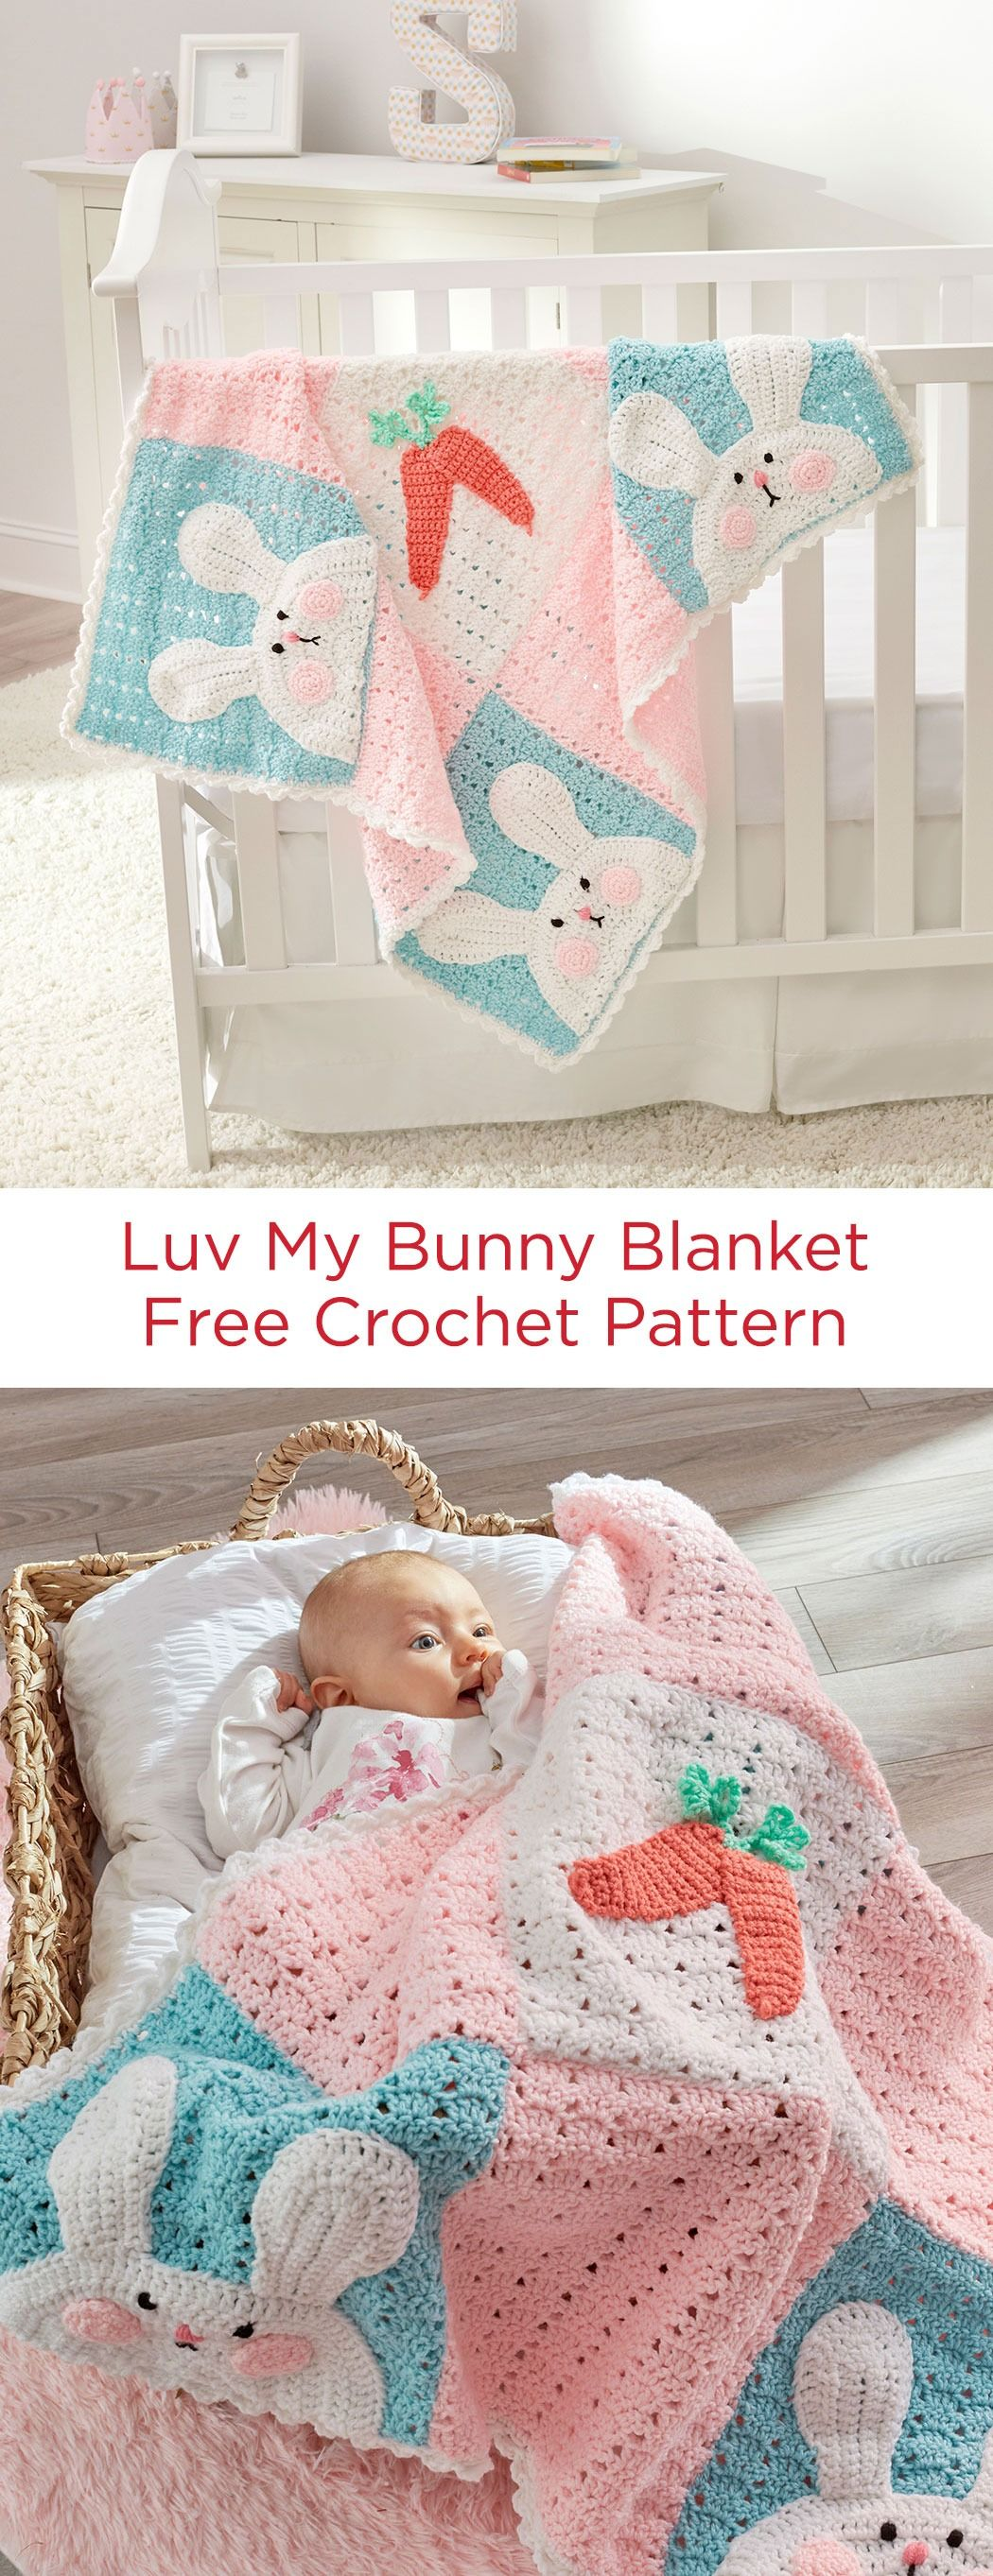 Luv My Bunny Blanket Free Crochet Pattern in Red Heart Yarns -- Nine ...